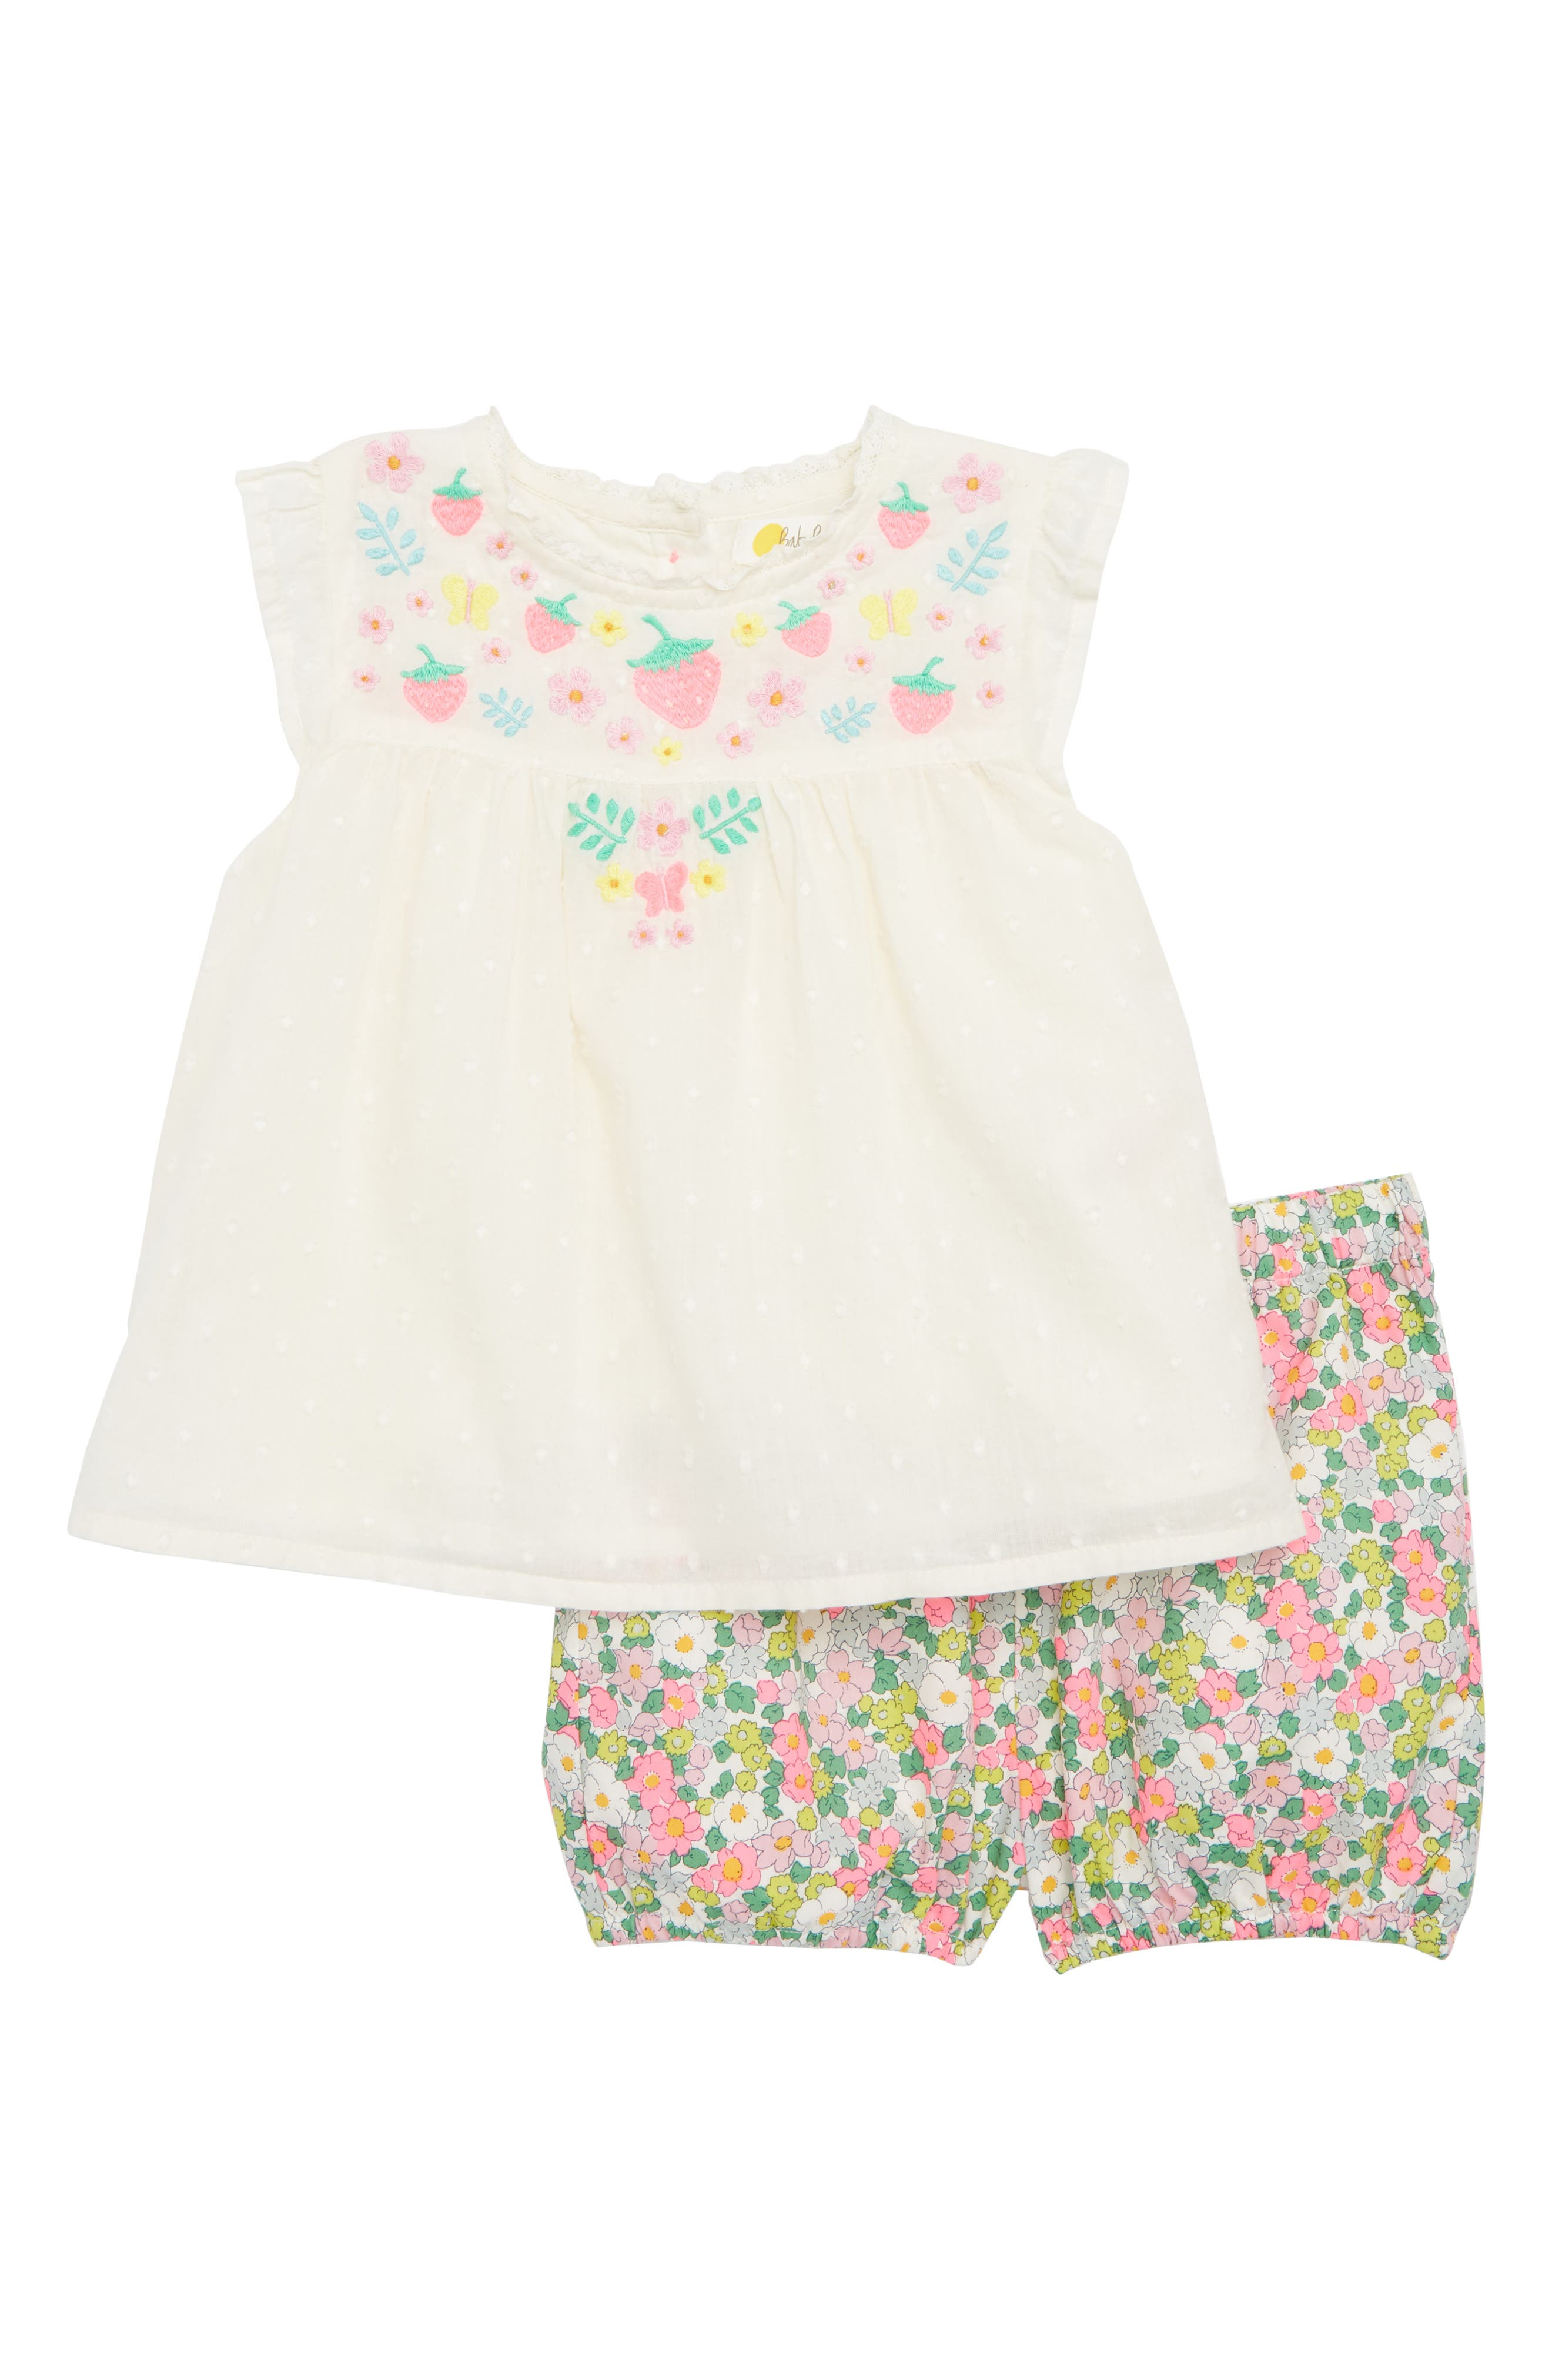 Sunny Days Top & Shorts Set,                         Main,                         color, 904